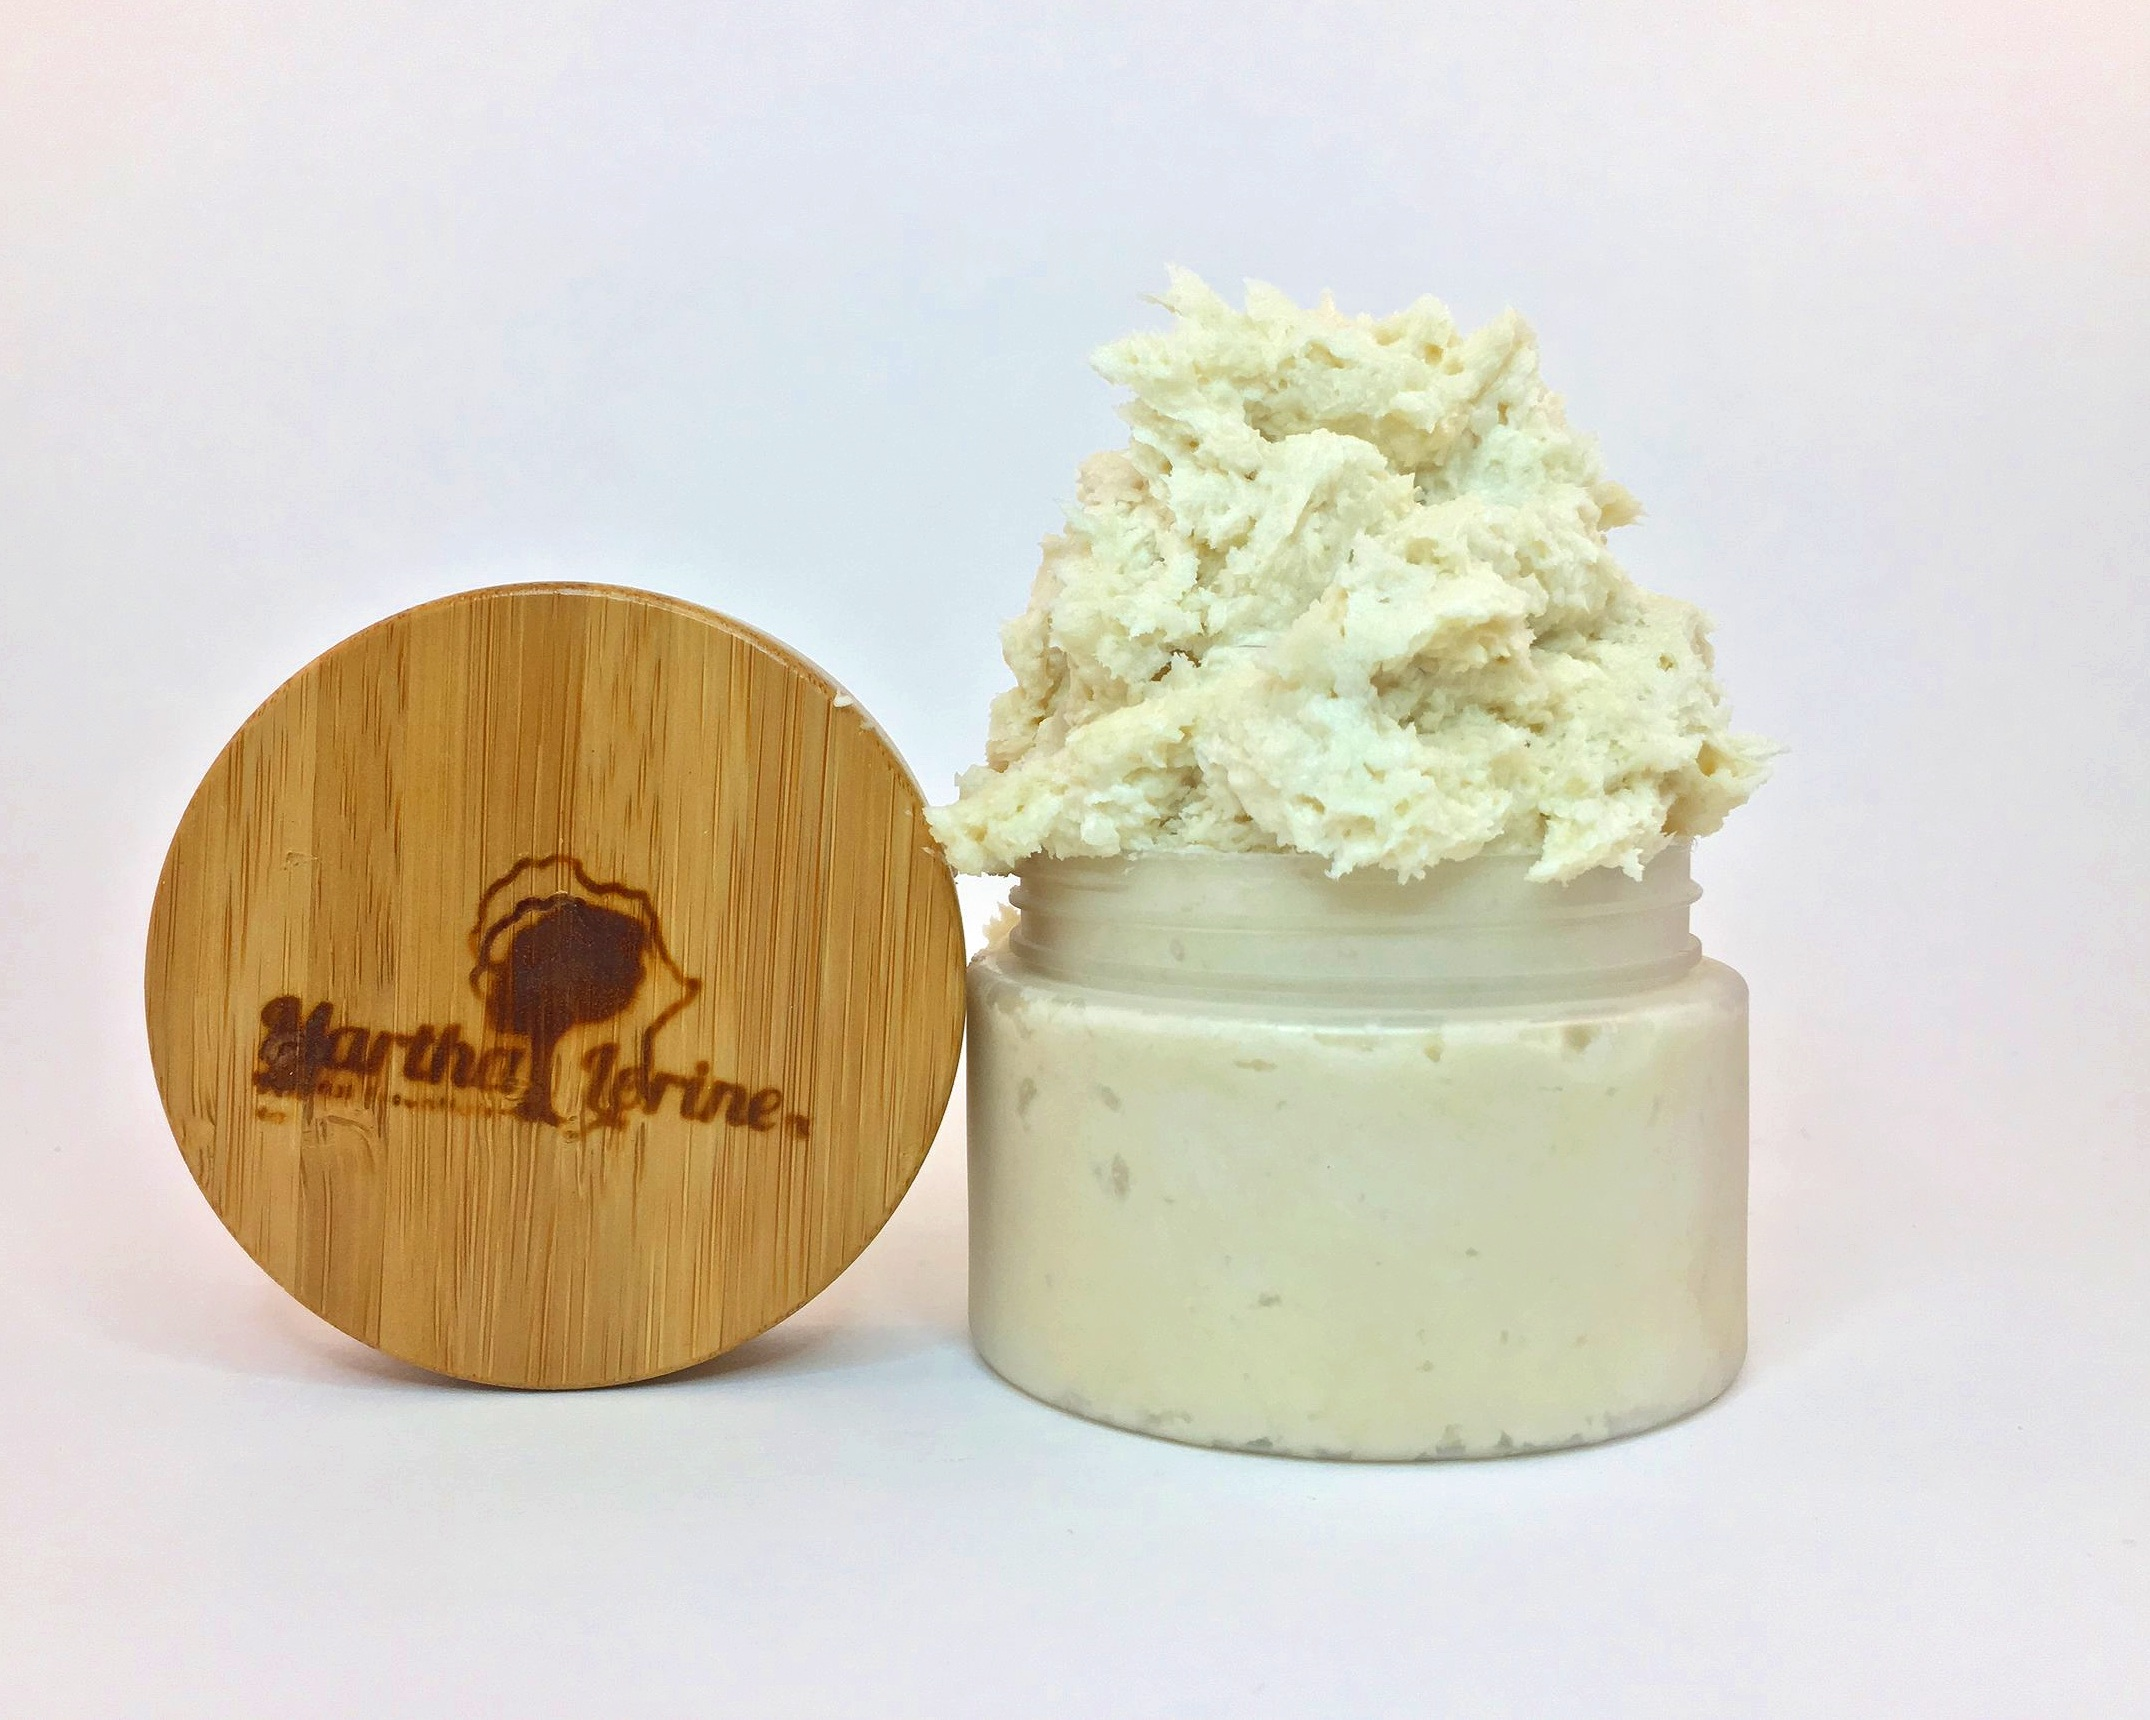 - Pure, Raw Organic Shea Butter, Ethically Sourced From Ghana, West Africa. This Shea Butter Has a Natural Smell. Does NOT Contain Any Essential Oil.